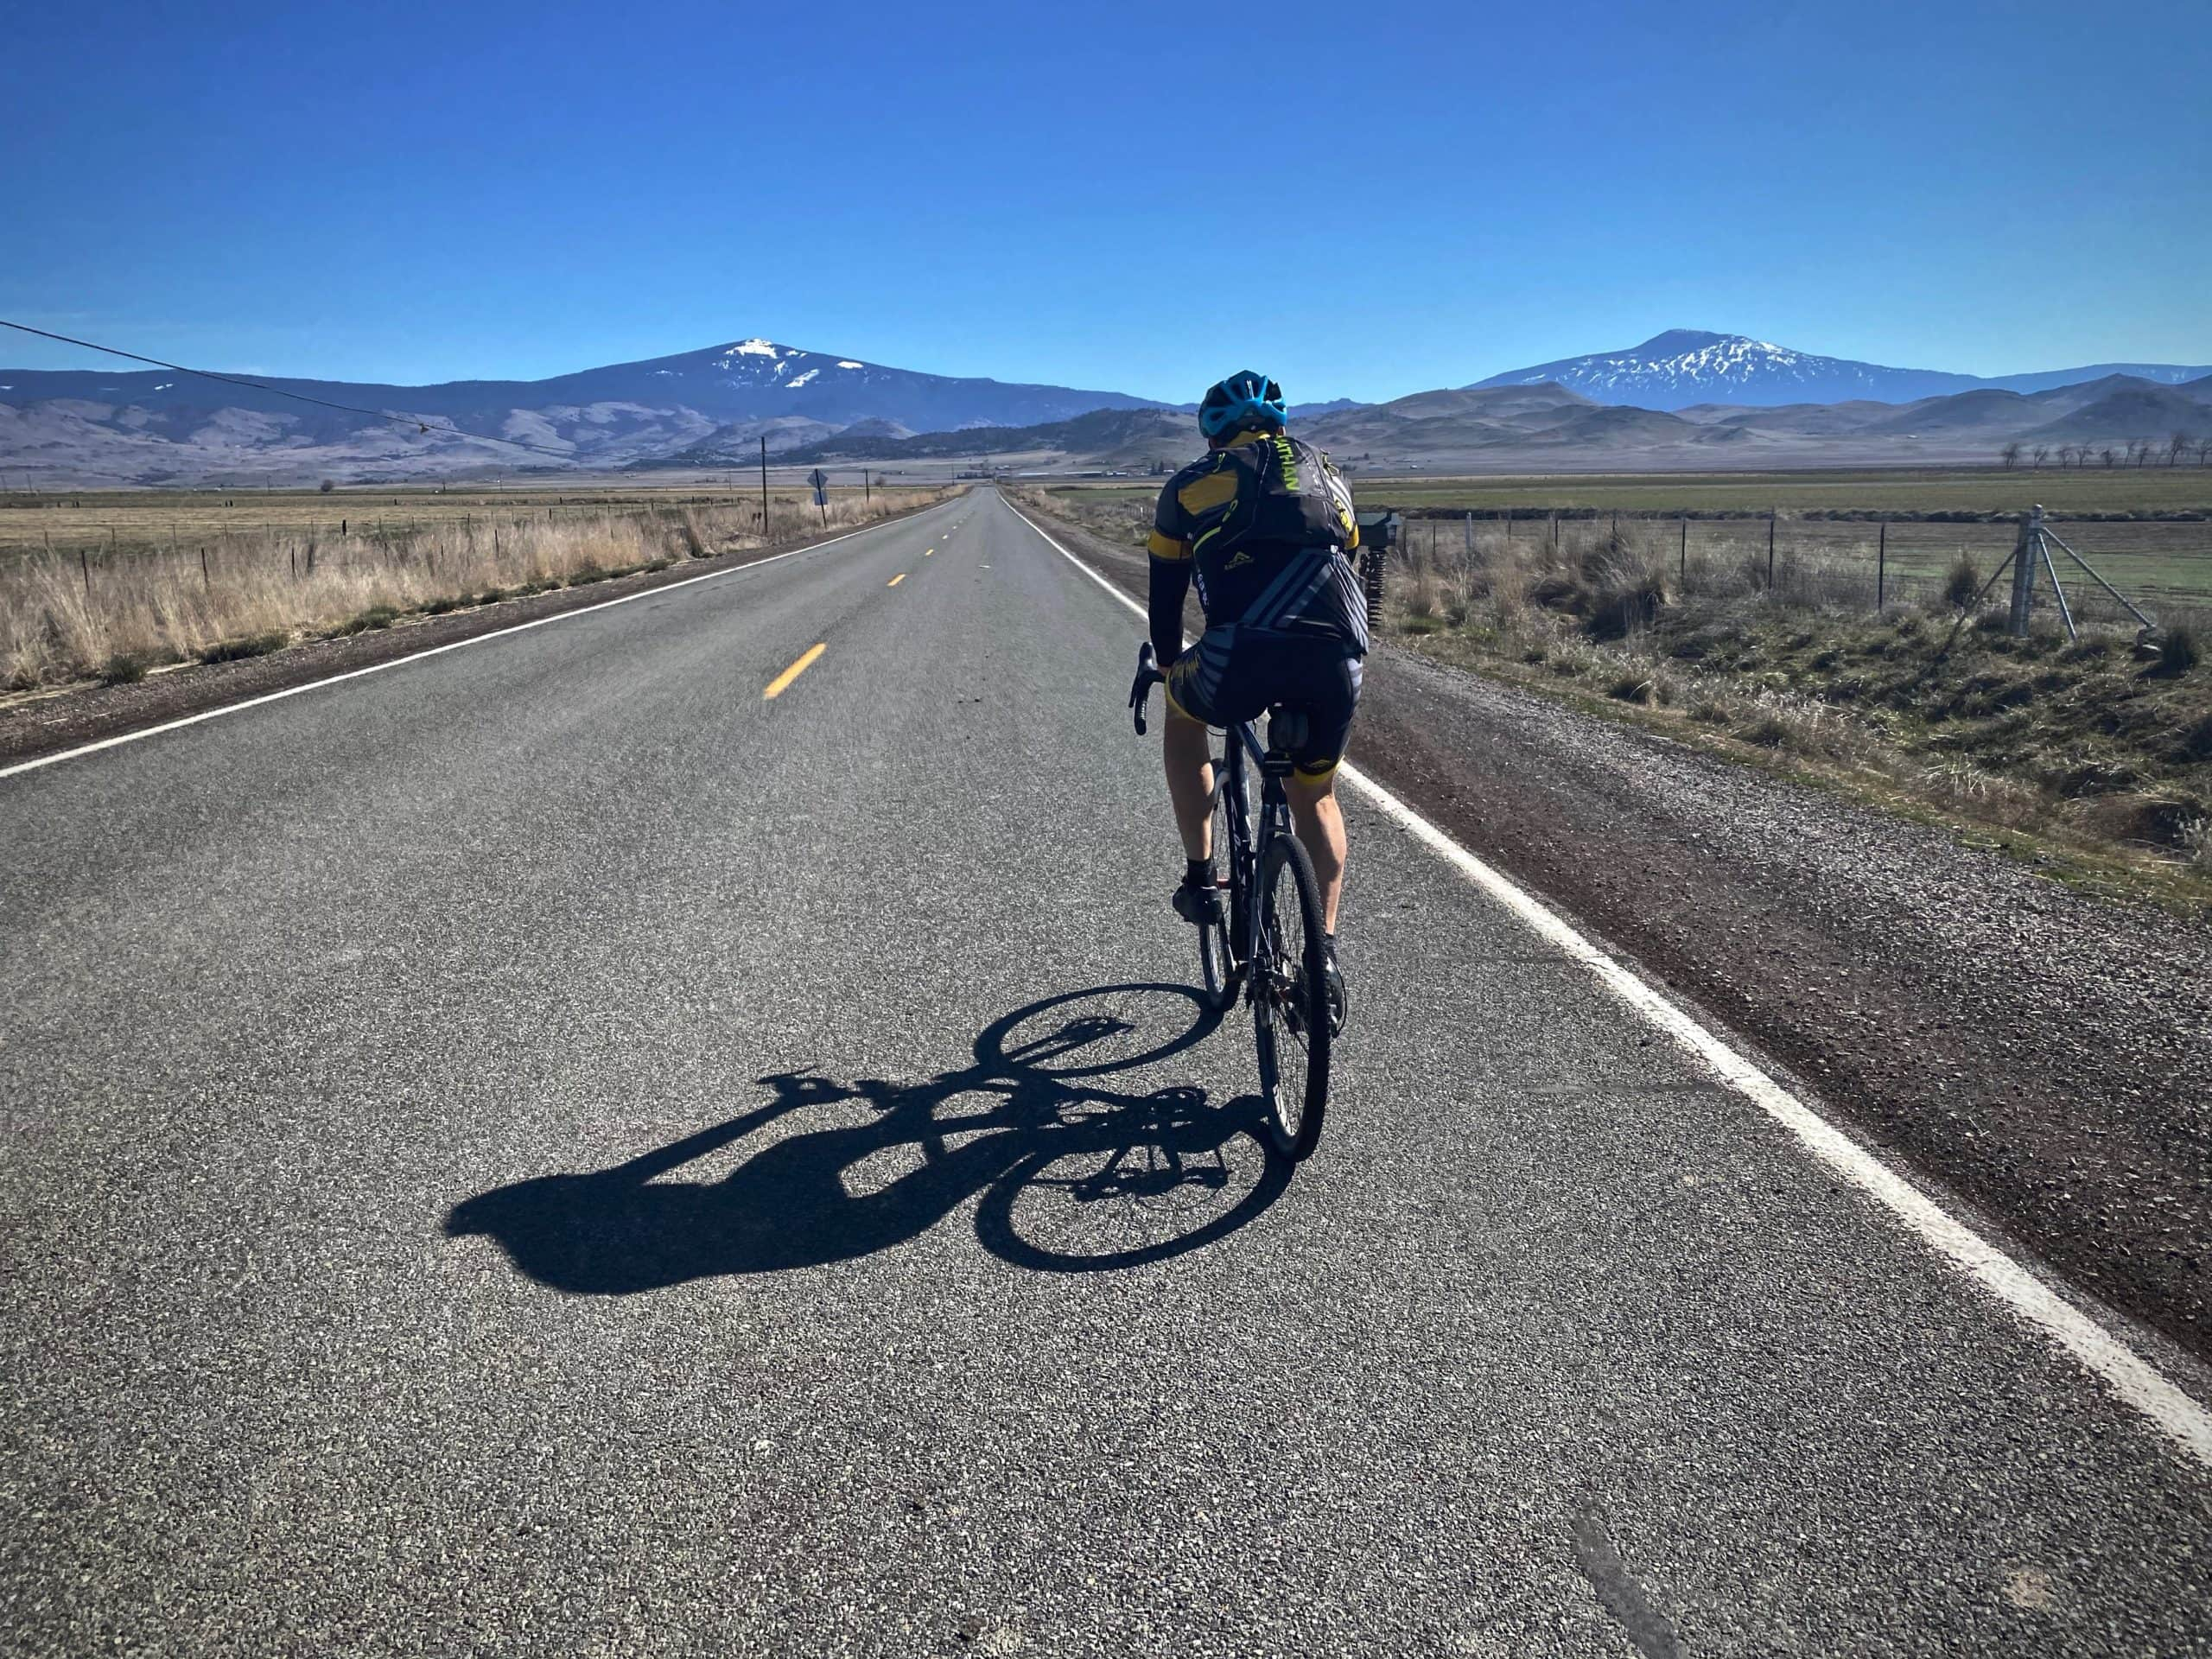 Woman cyclist on paved road heading north out of Montage, CA in northern California.